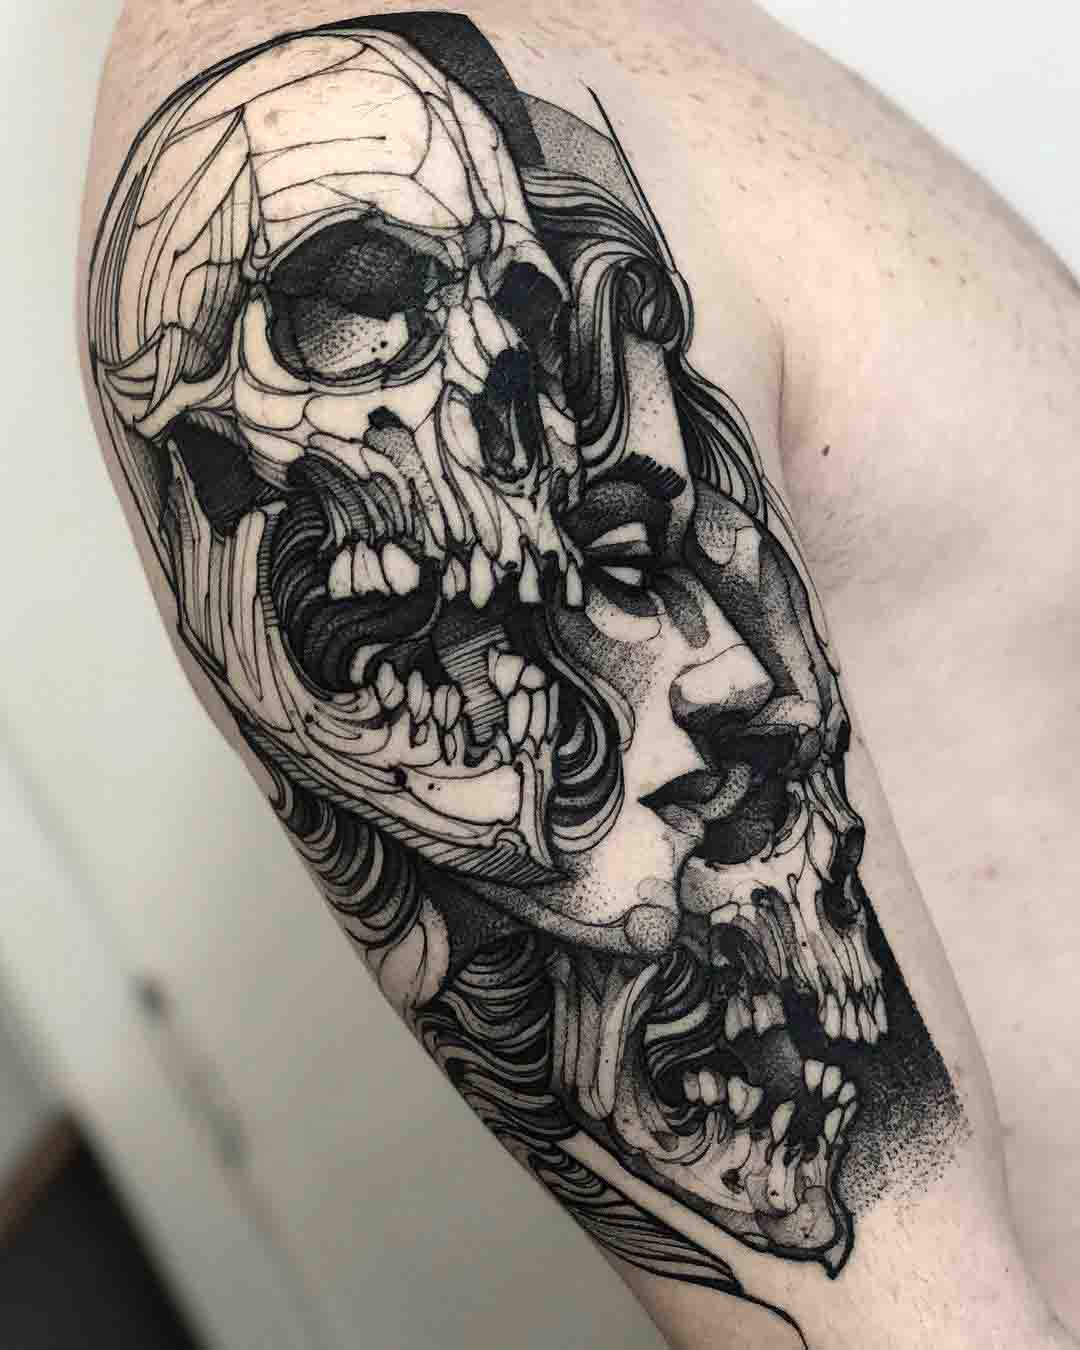 Twos skulls and face tattoo on shoulder